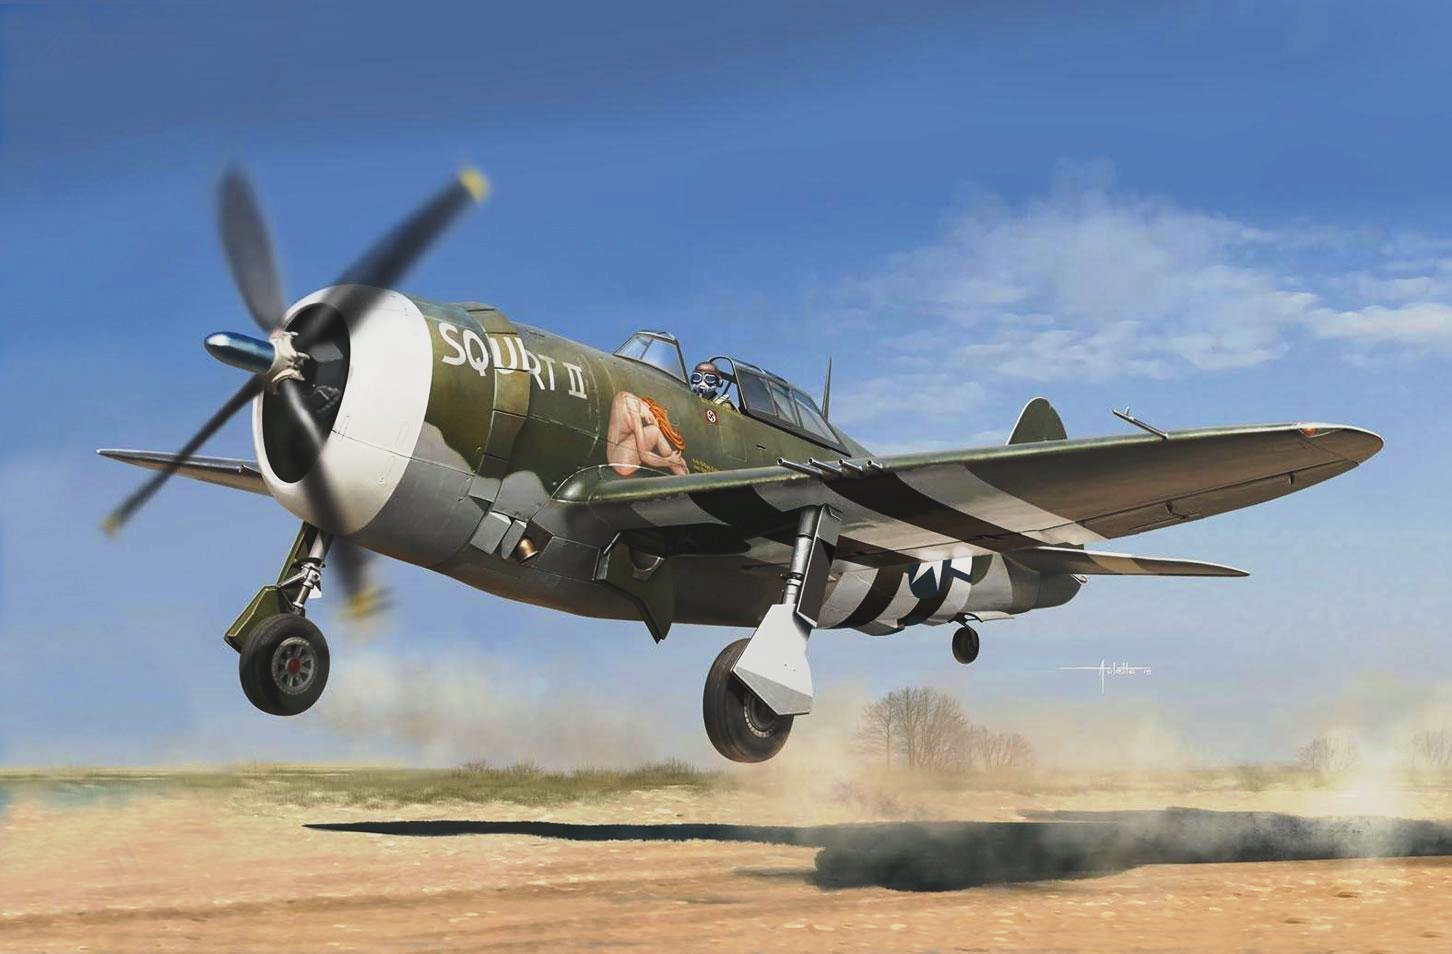 P 47 Thunderbolt Wallpaper P 47 Thunderbolt wallp...